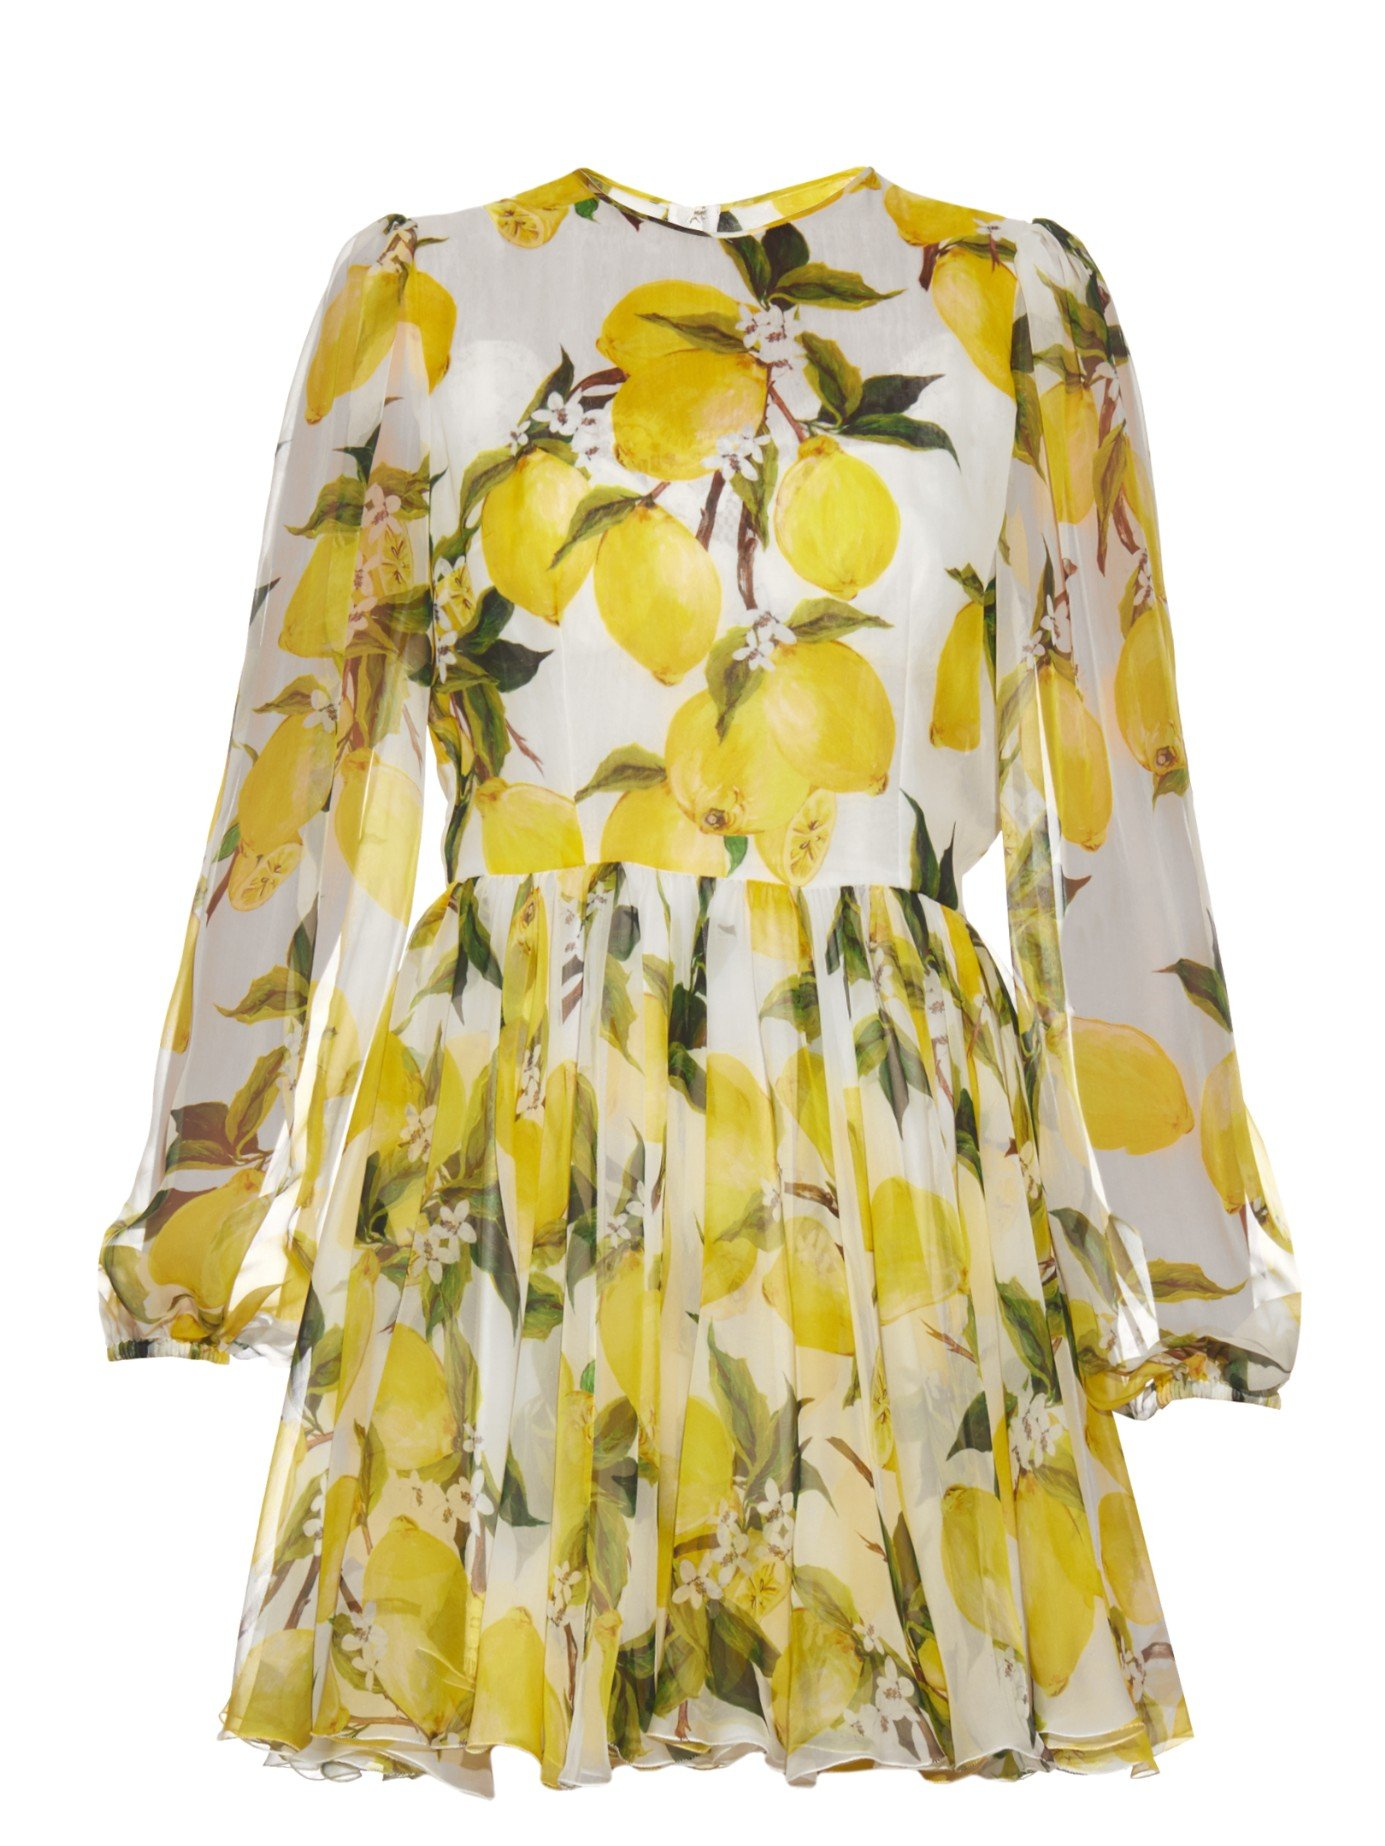 Lyst - Dolce   Gabbana Lemon-print Silk-chiffon Mini Dress in Yellow c9f859e2e8d29